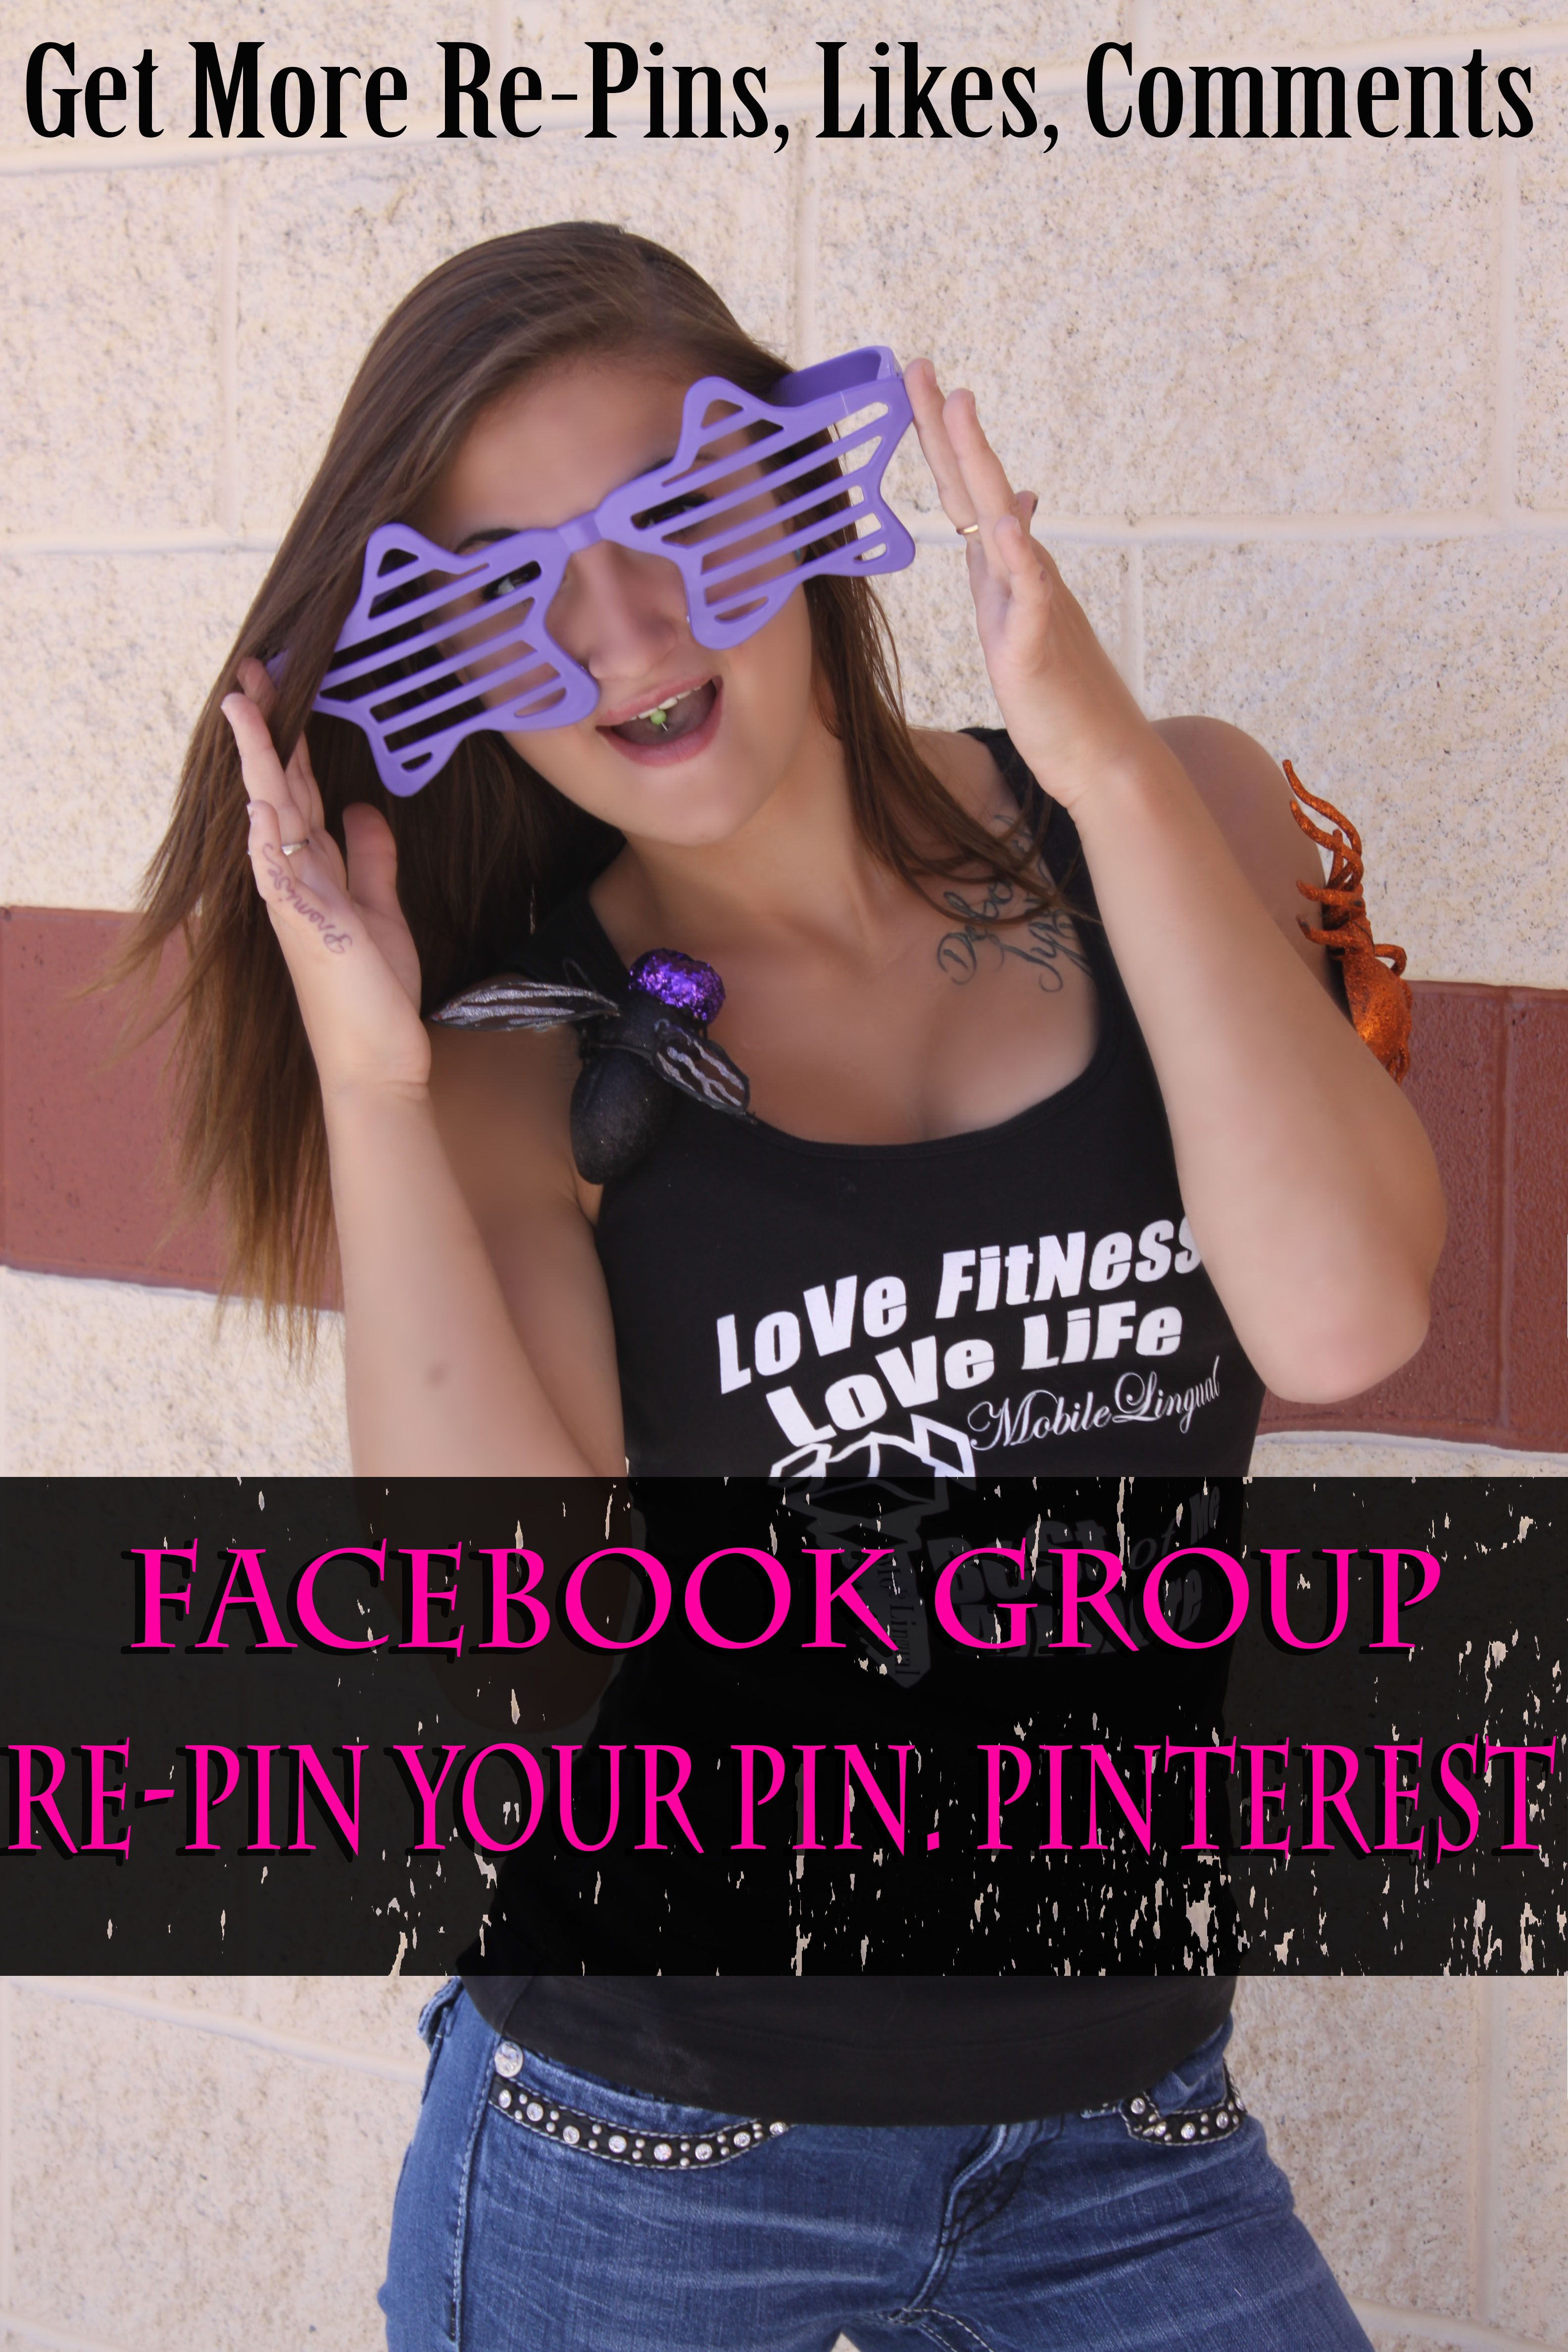 No one pins you Pins? Do you need a little boost to your Pinterest account? Going the Facebook group and share your pins with others! CLICK ON THE PICTURE